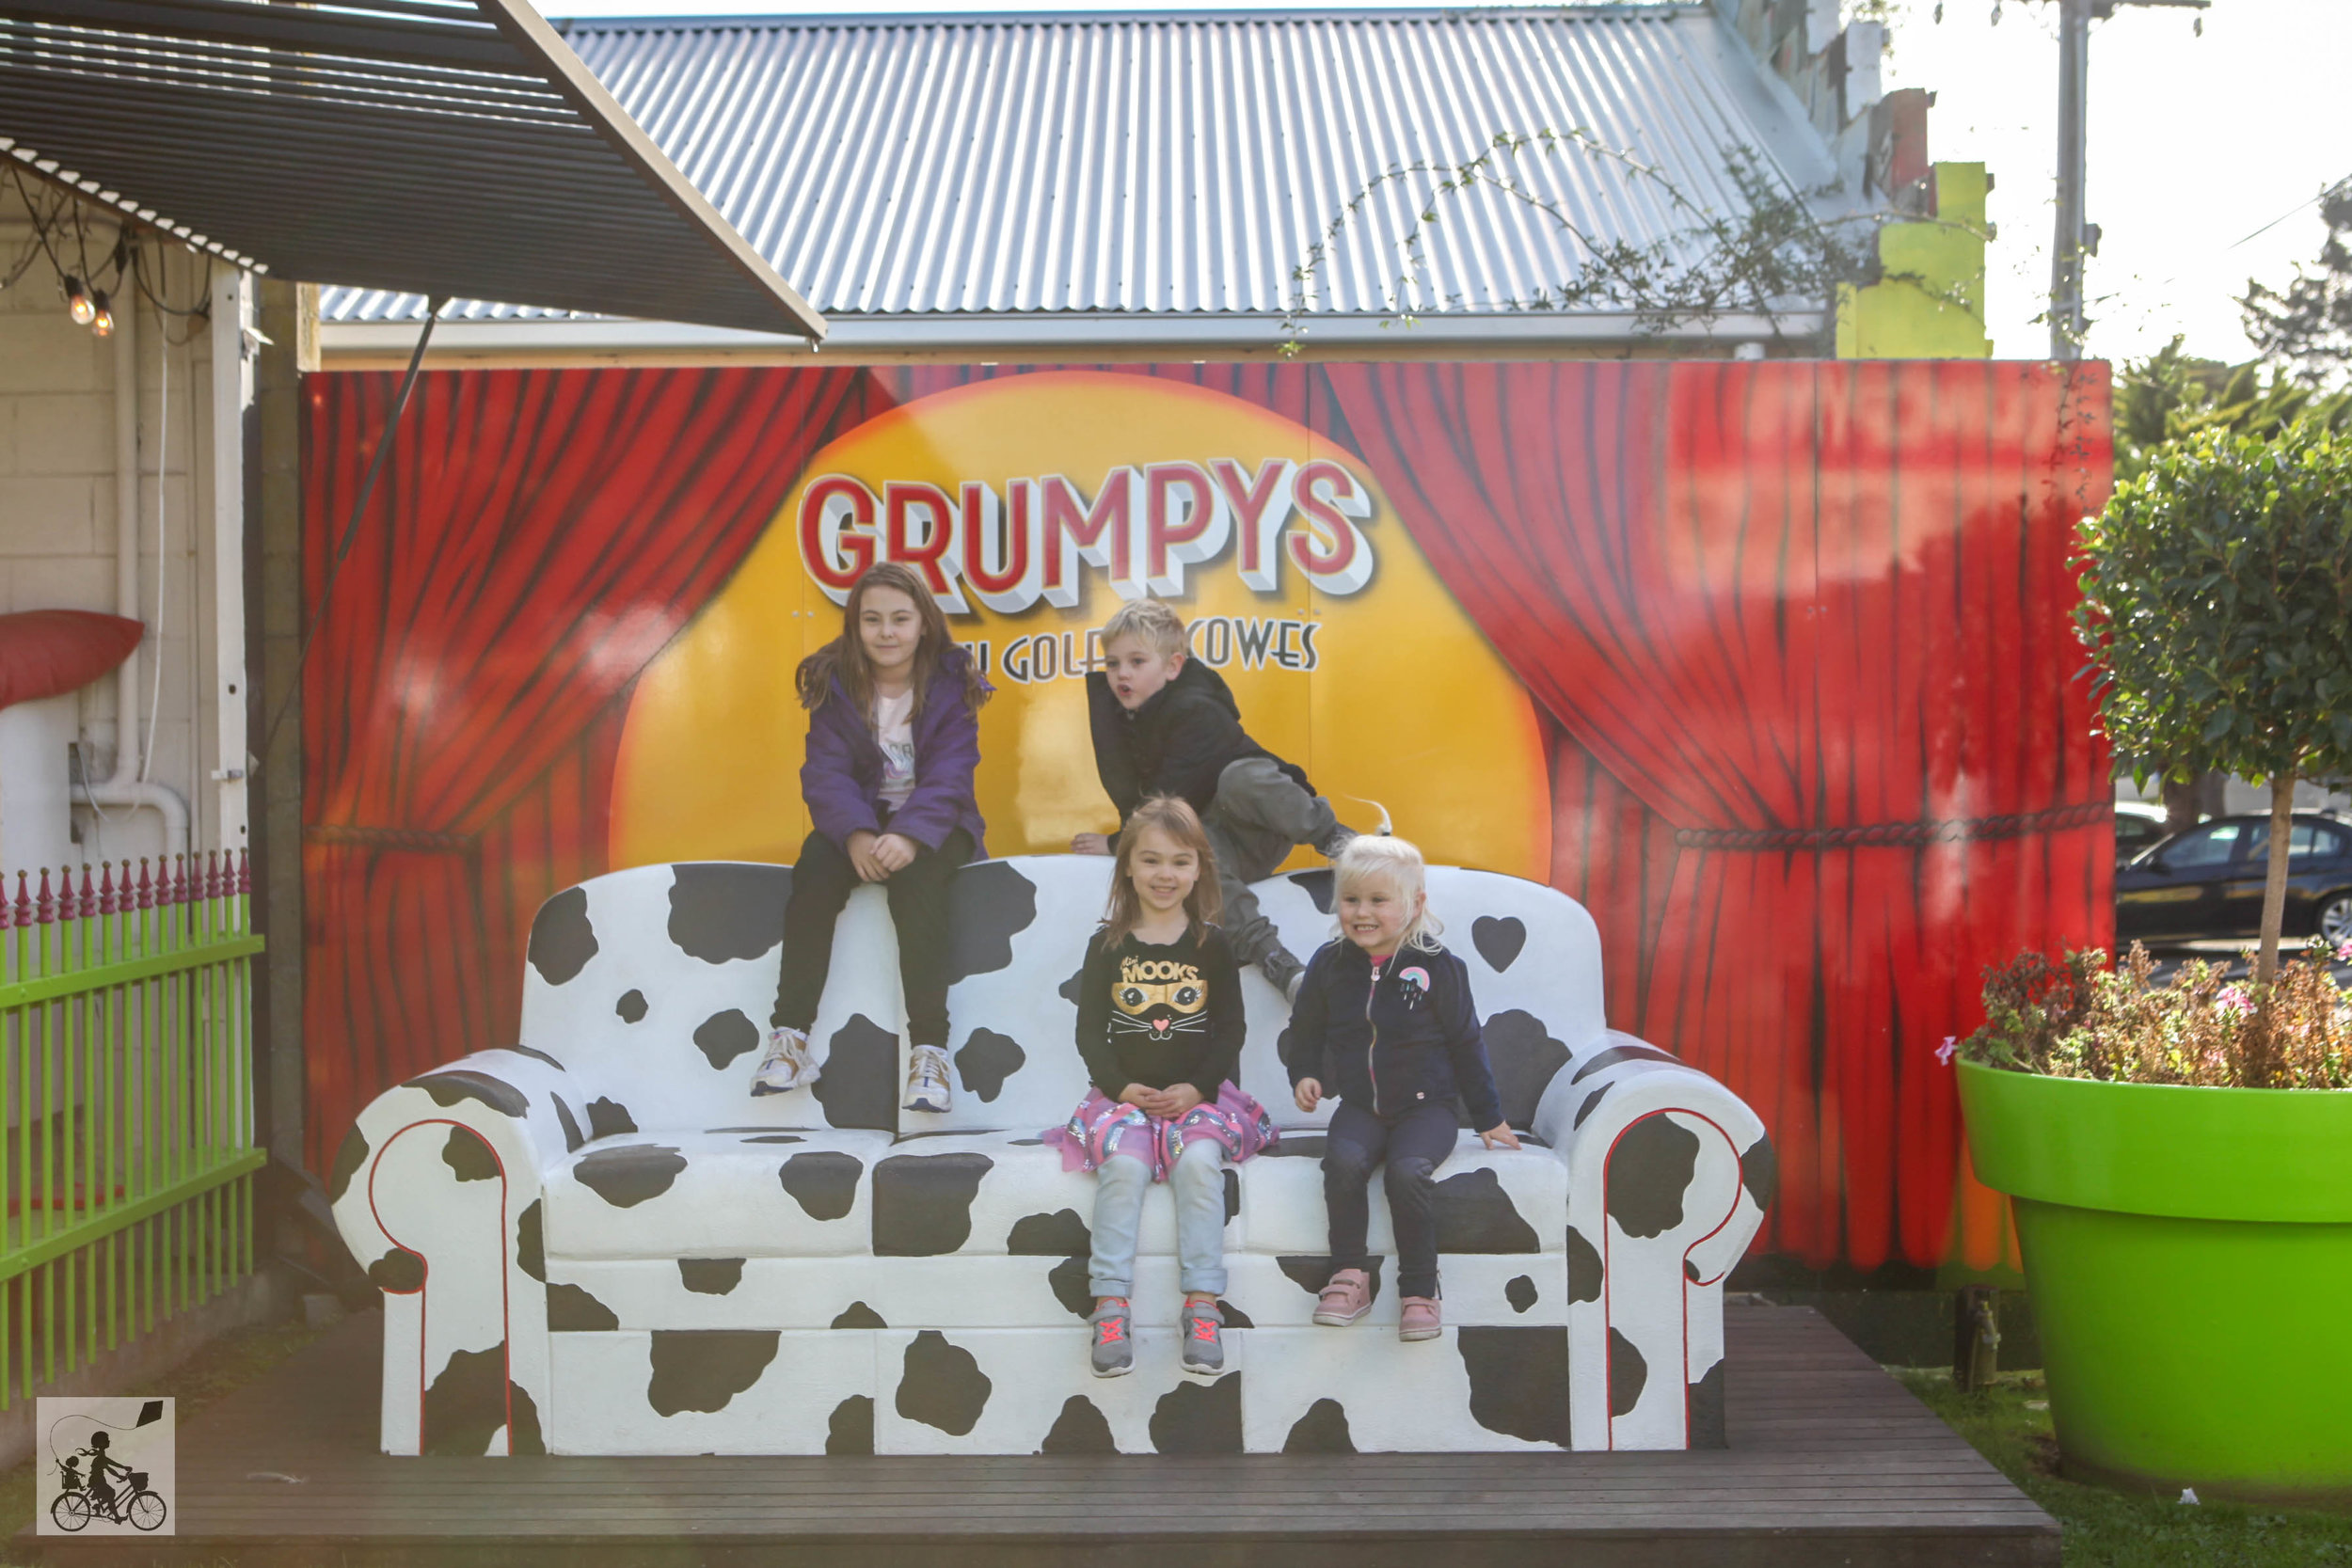 Mamma Knows South- grumpys crazy golf, cowes